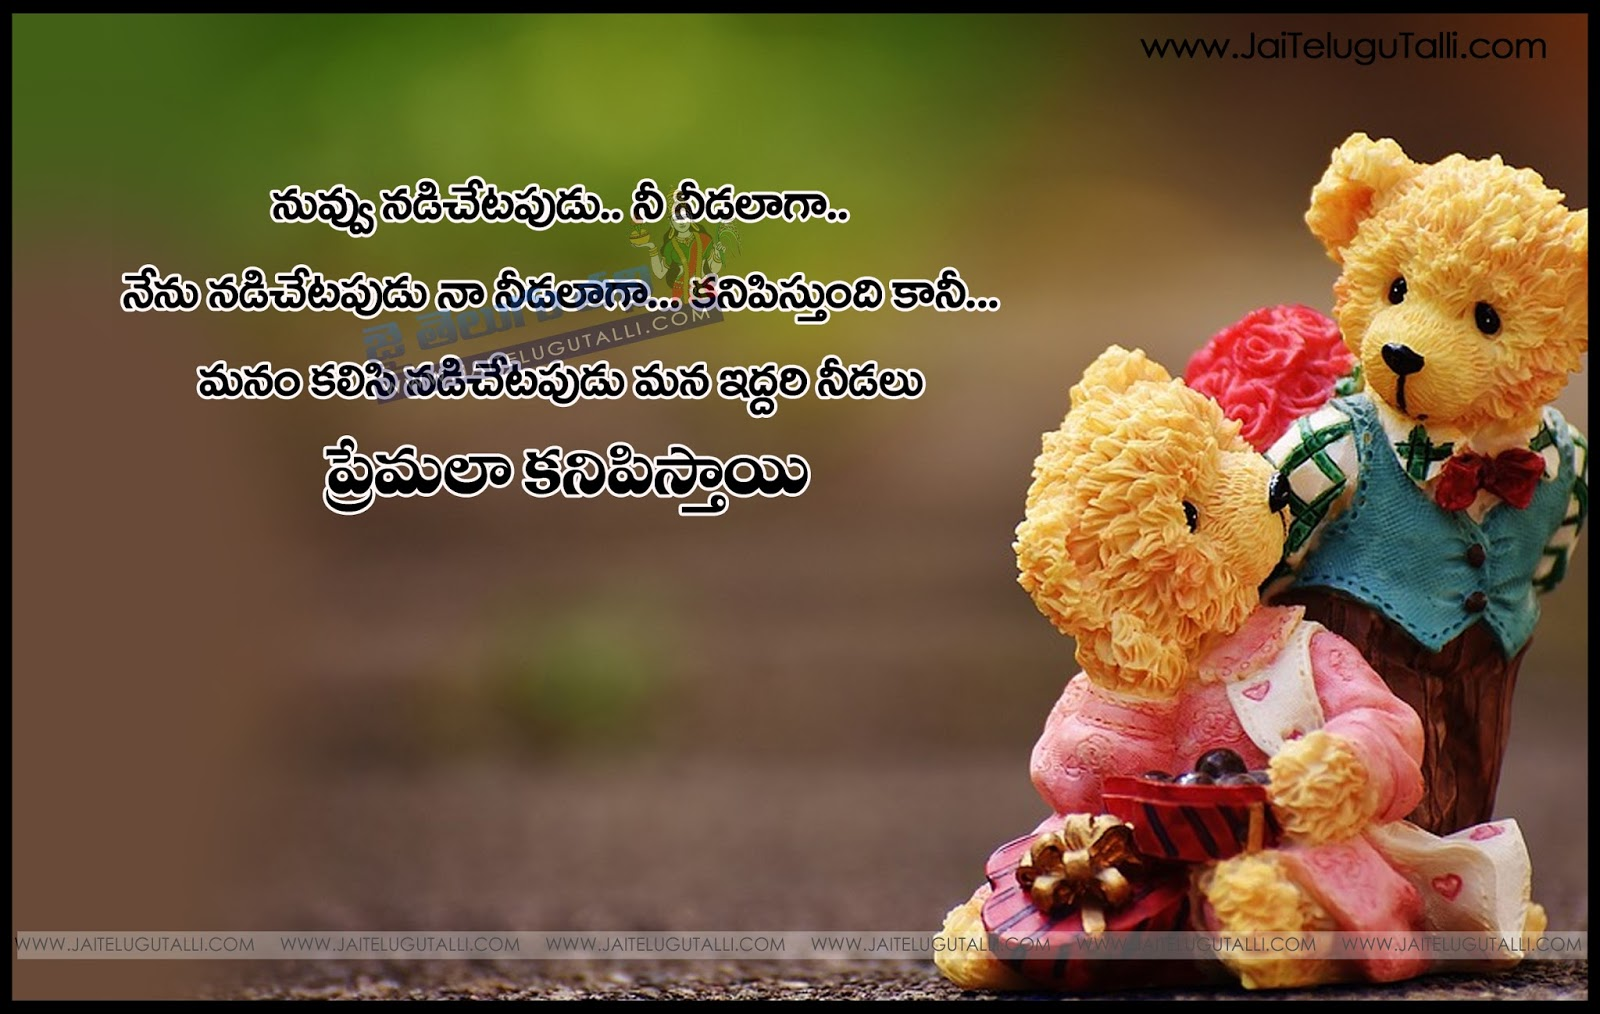 Heart Touching Love Quotes Unique Love Quotes In Telugu Hd Pictures Cute Heart Touching Love